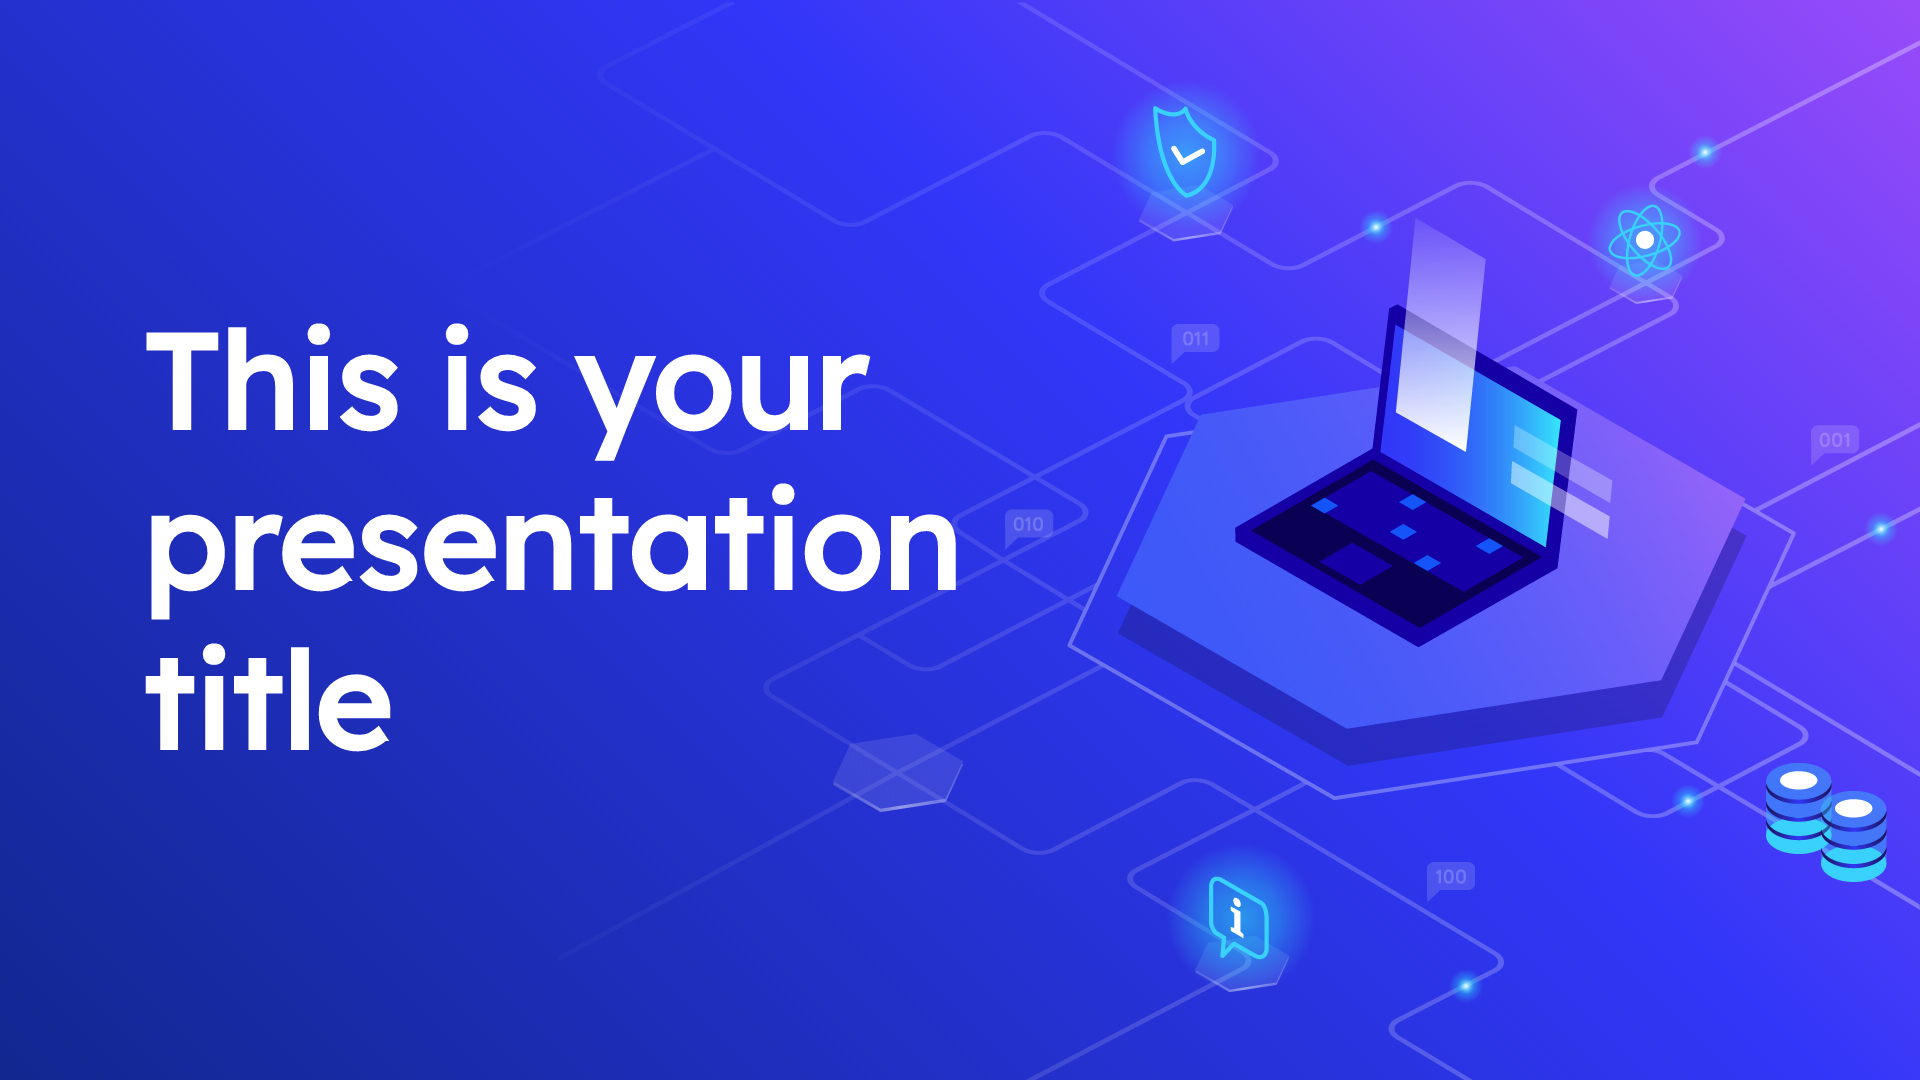 Free technology Powerpoint template or Google Slides theme with isometric illustrations